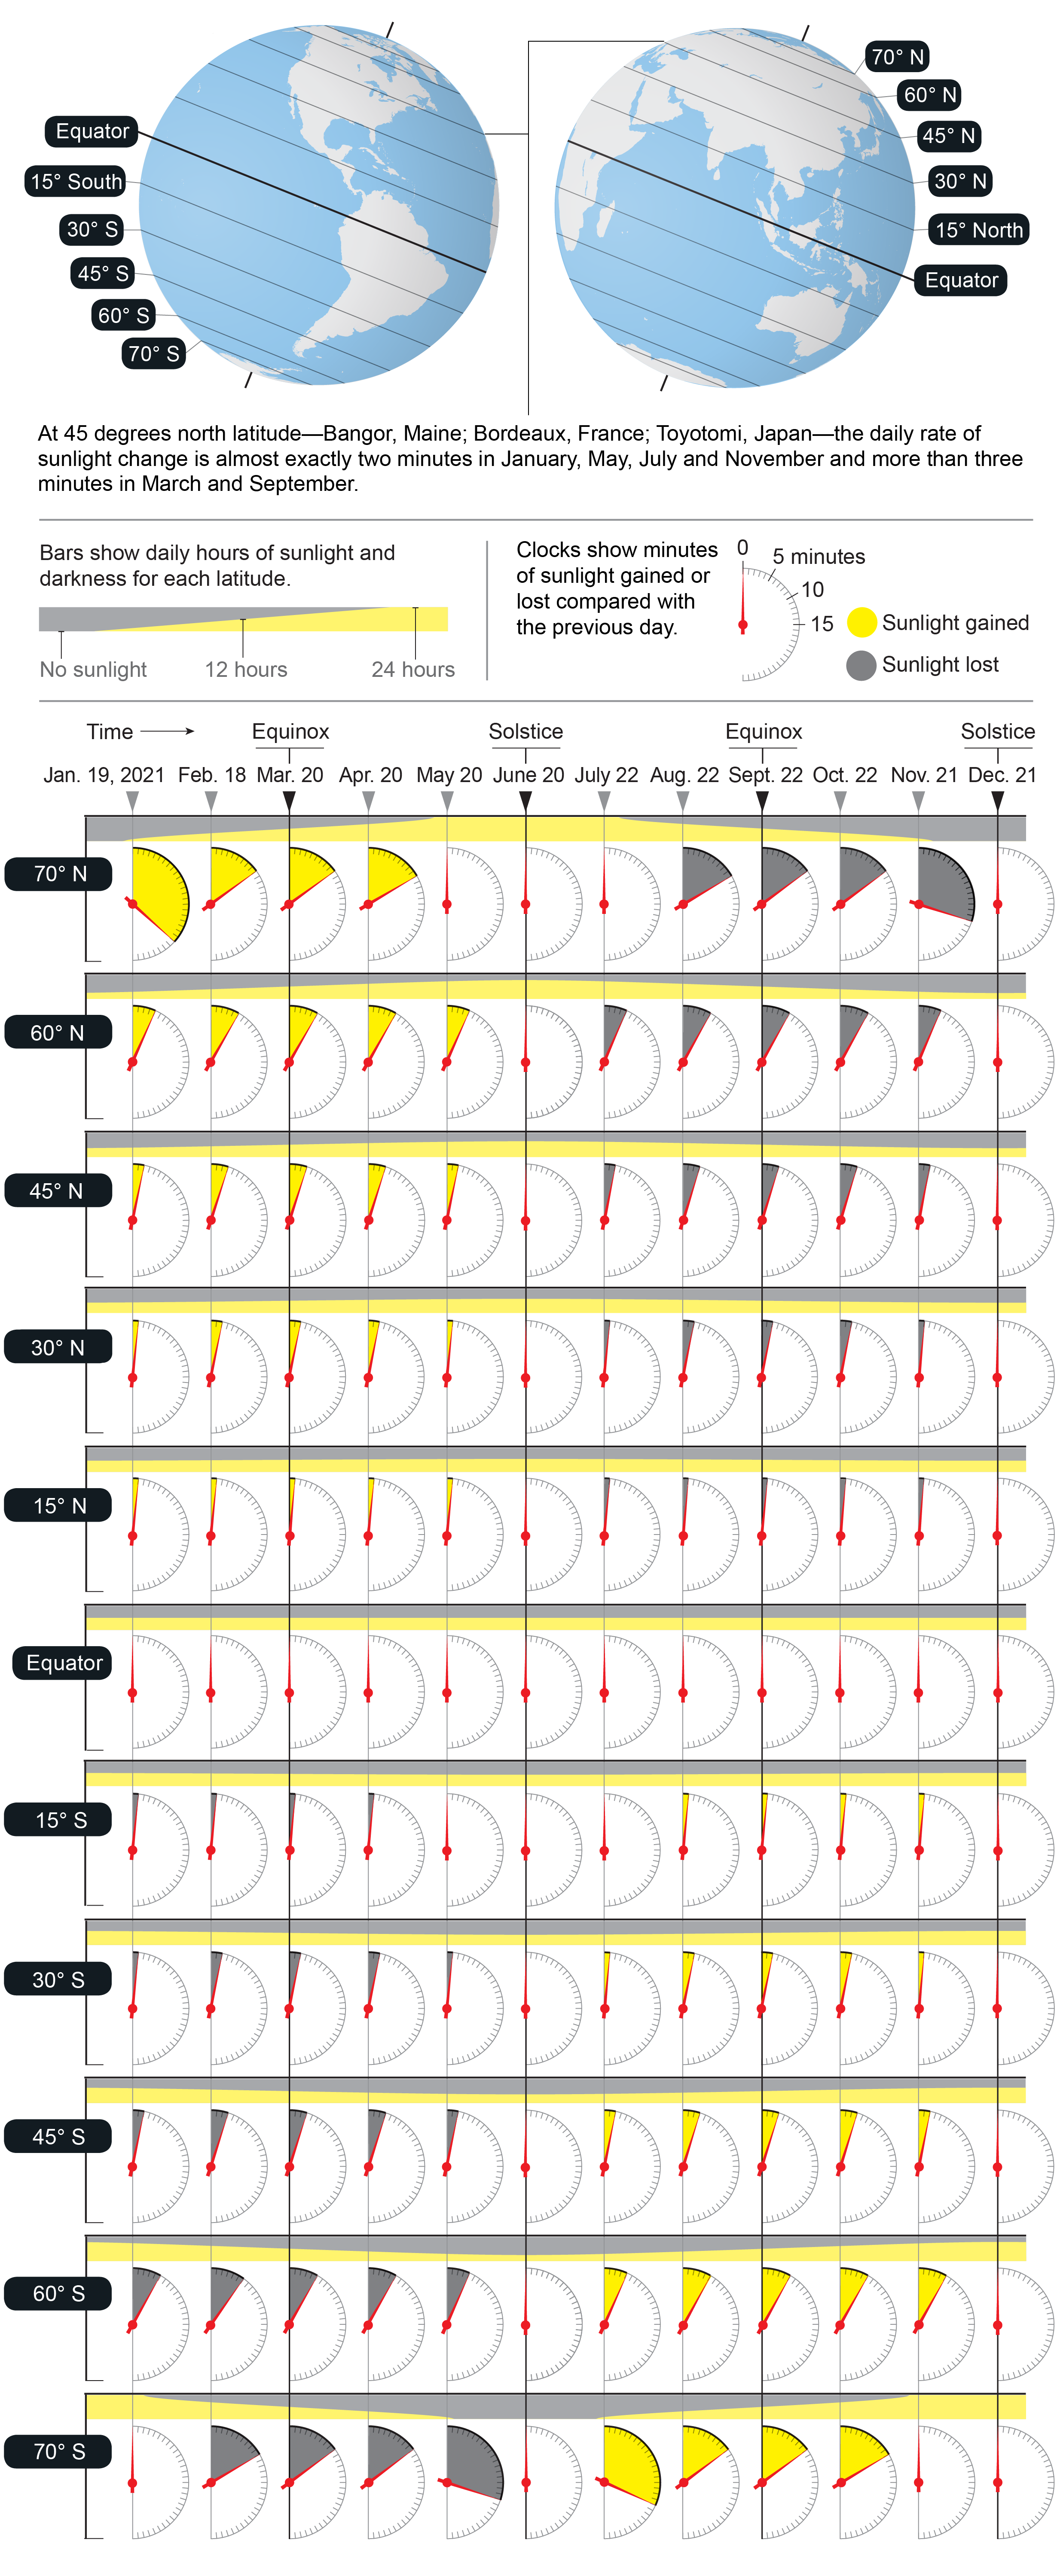 Graphic shows variable rates in losses or gains of sunlight each month throughout the year at different latitudes.